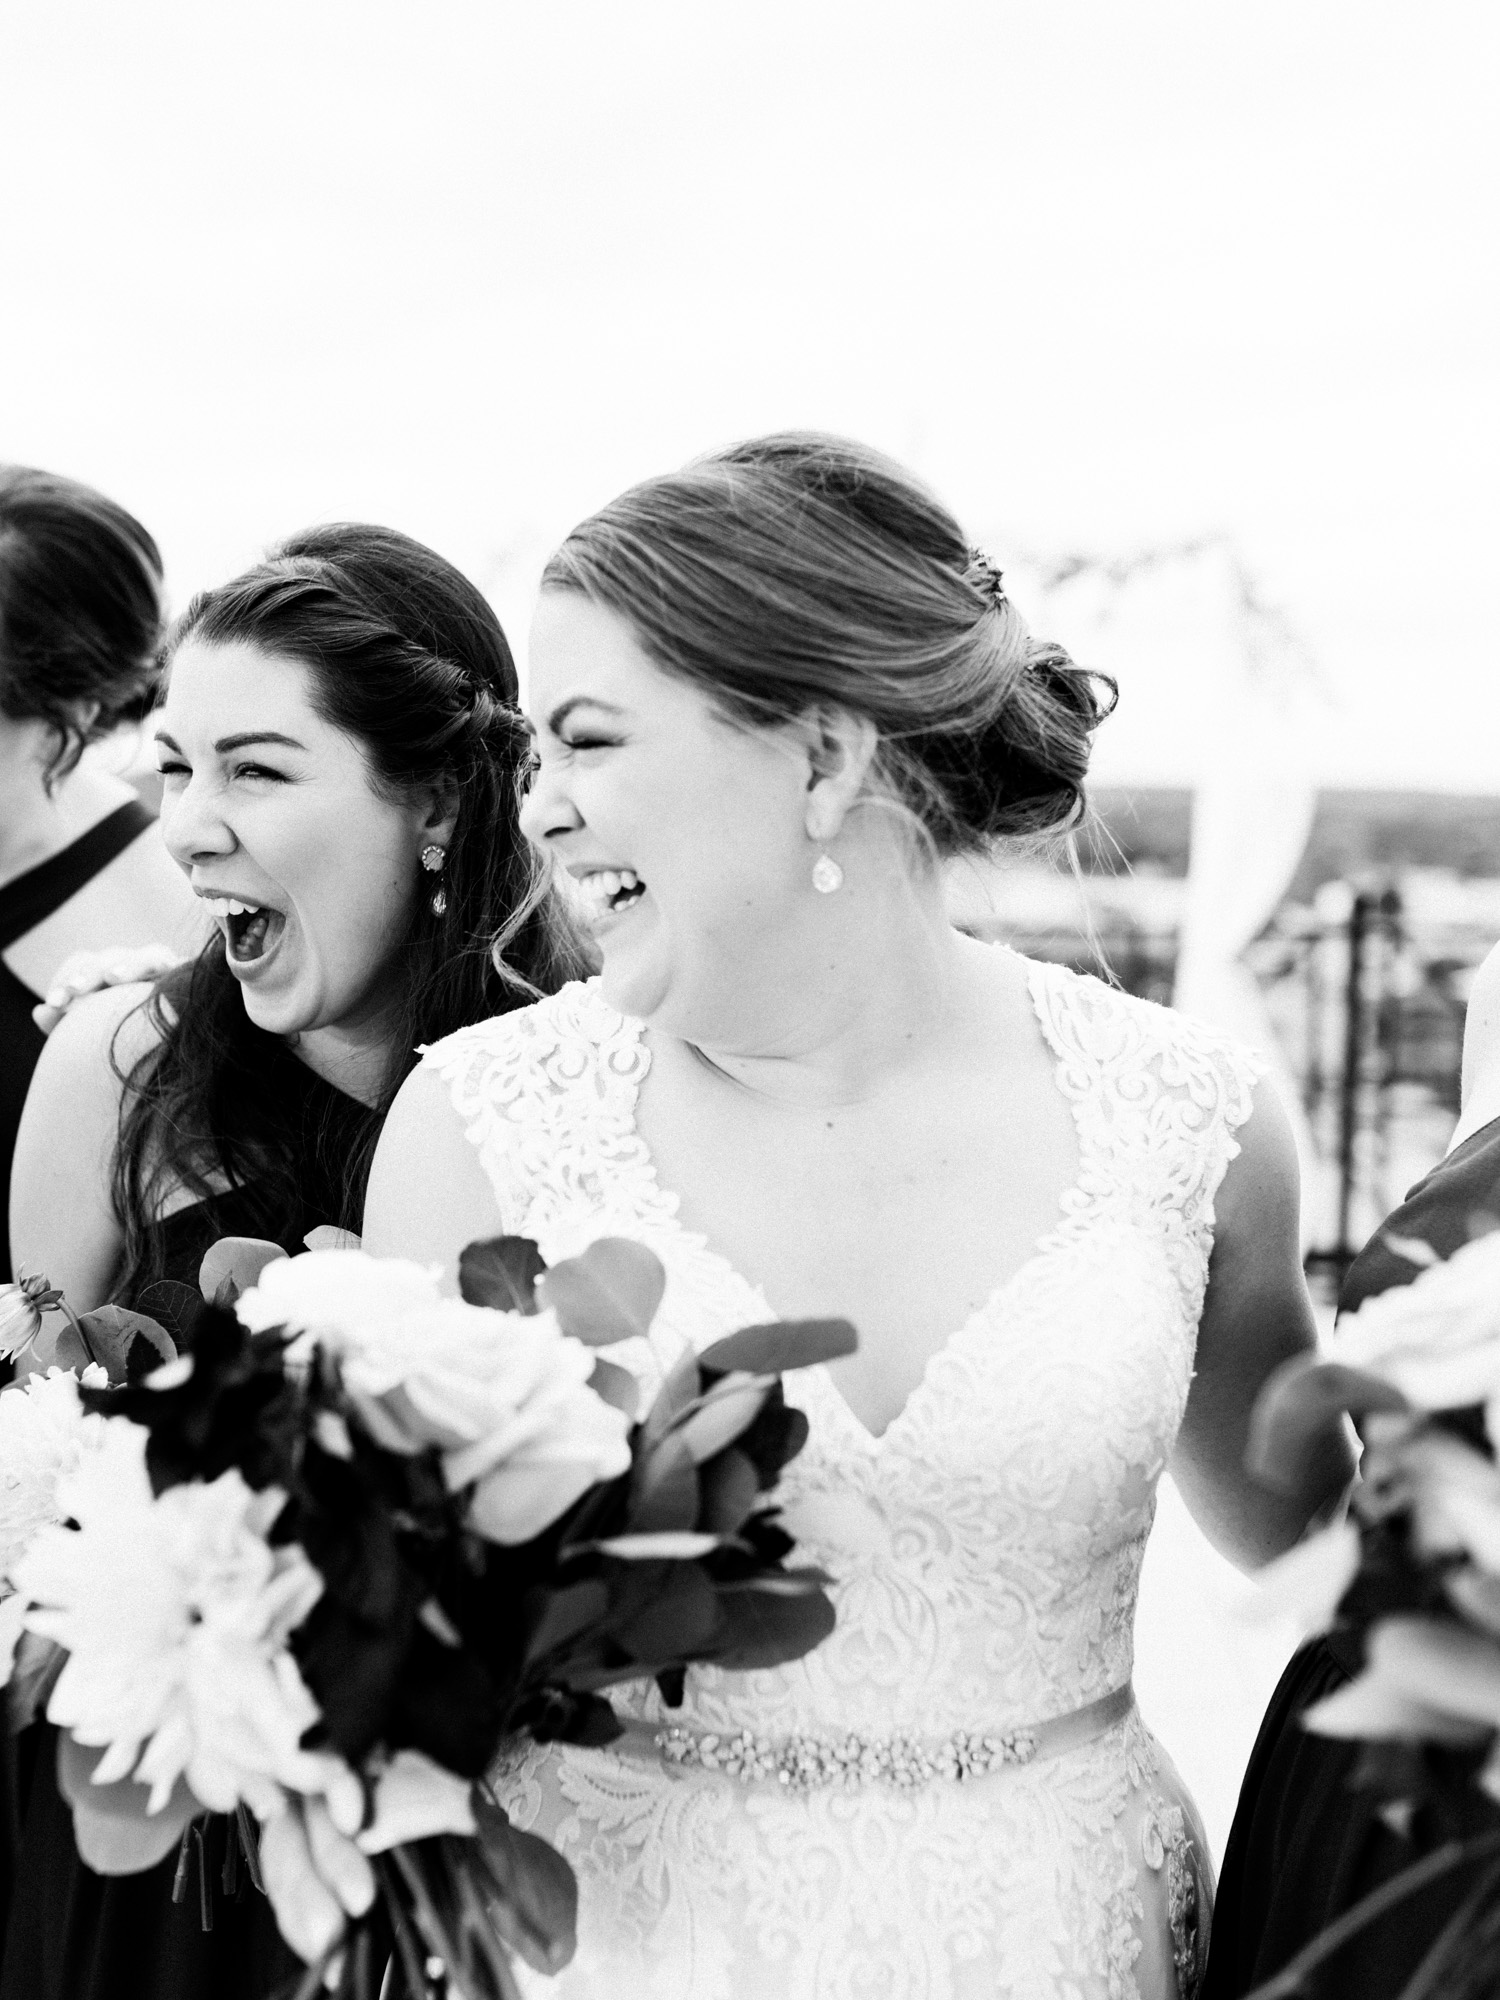 A bride laughs hard with her maid of honor on a rooftop